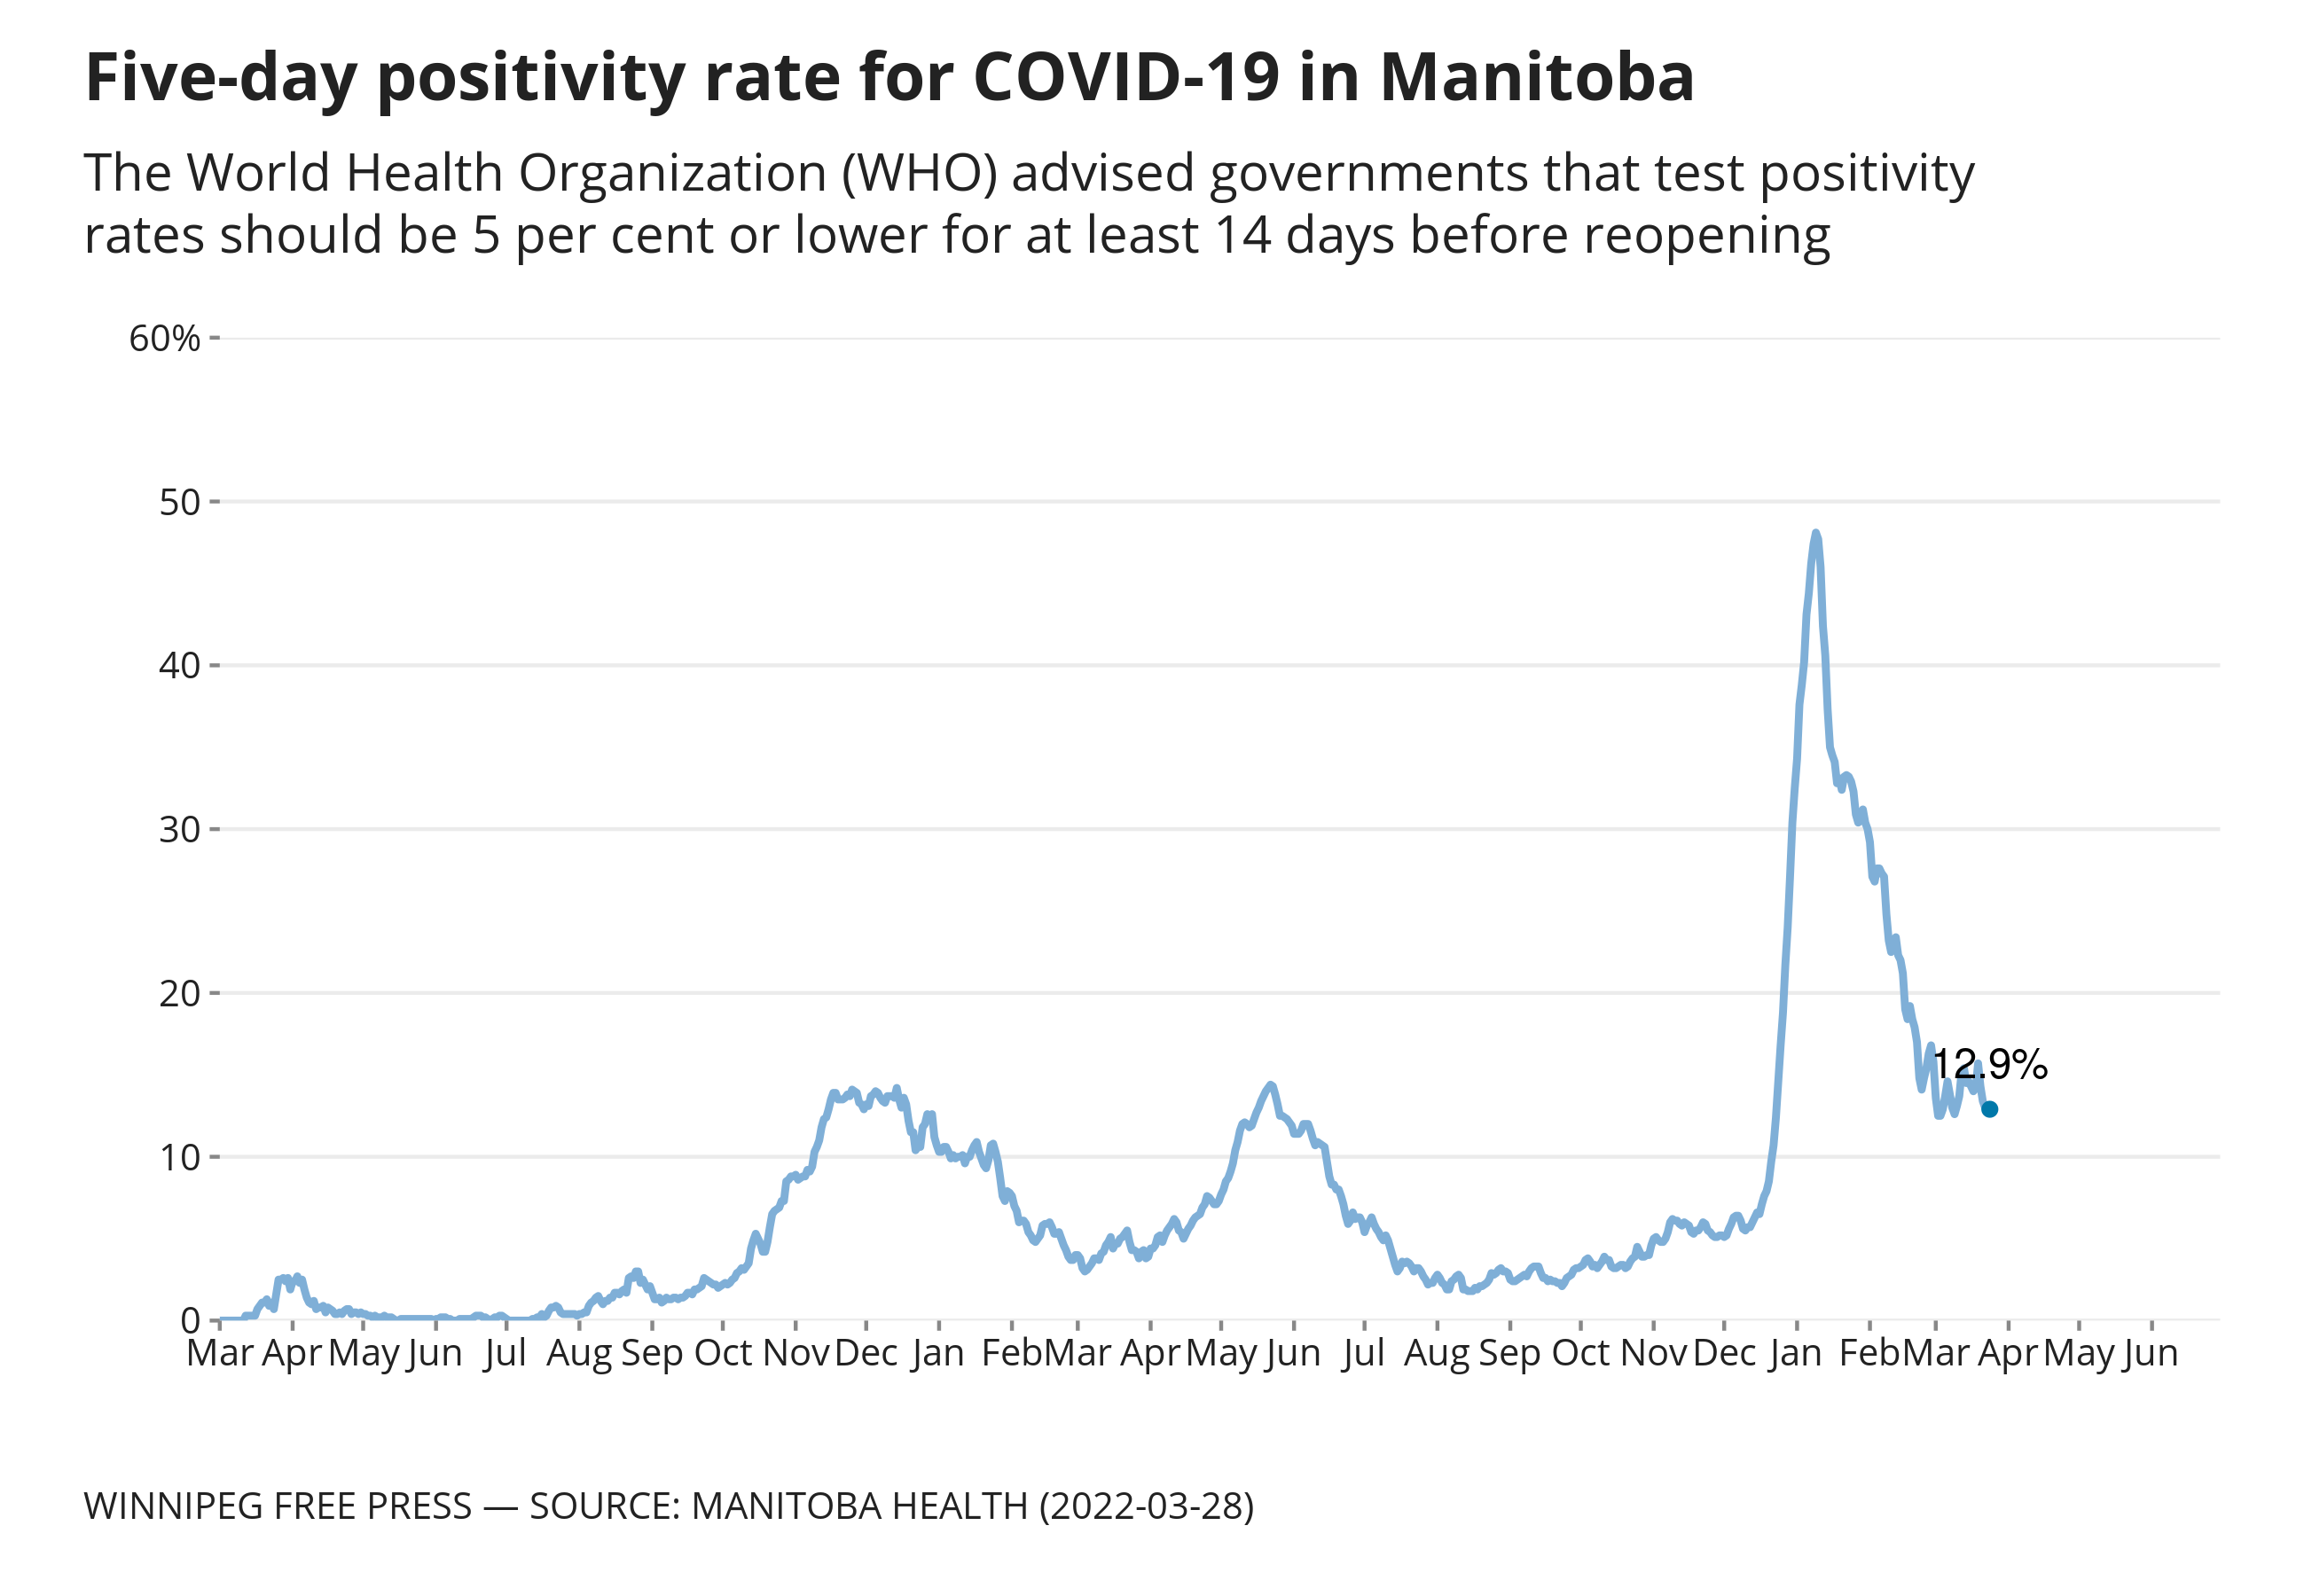 Chart showing daily and fivve-day positivity rates for COVID-19 in Manitoba